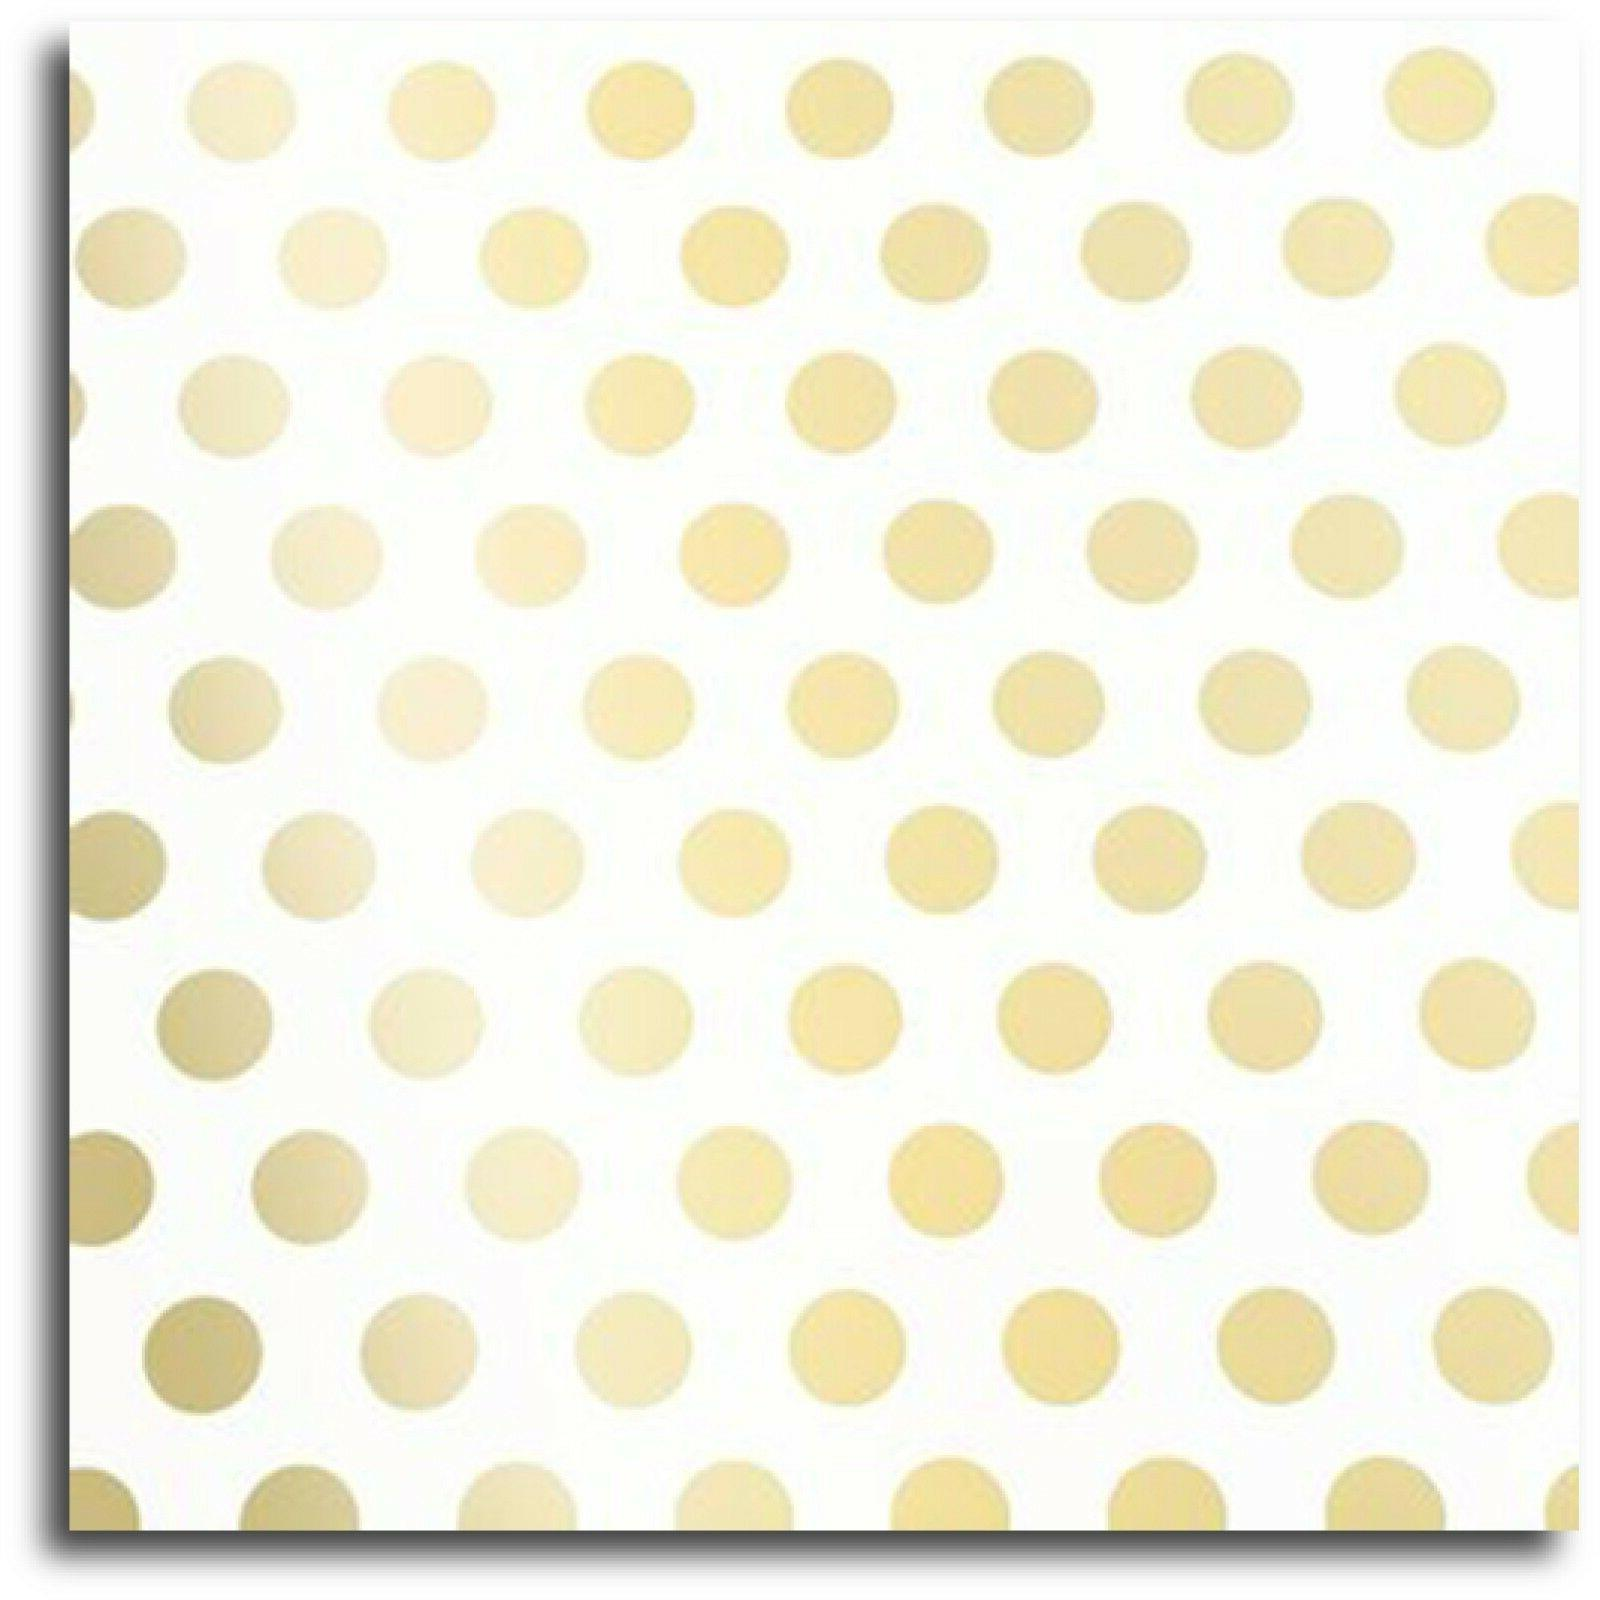 "Gold Foil Polka Dot Wrapping Paper x 240"" -"